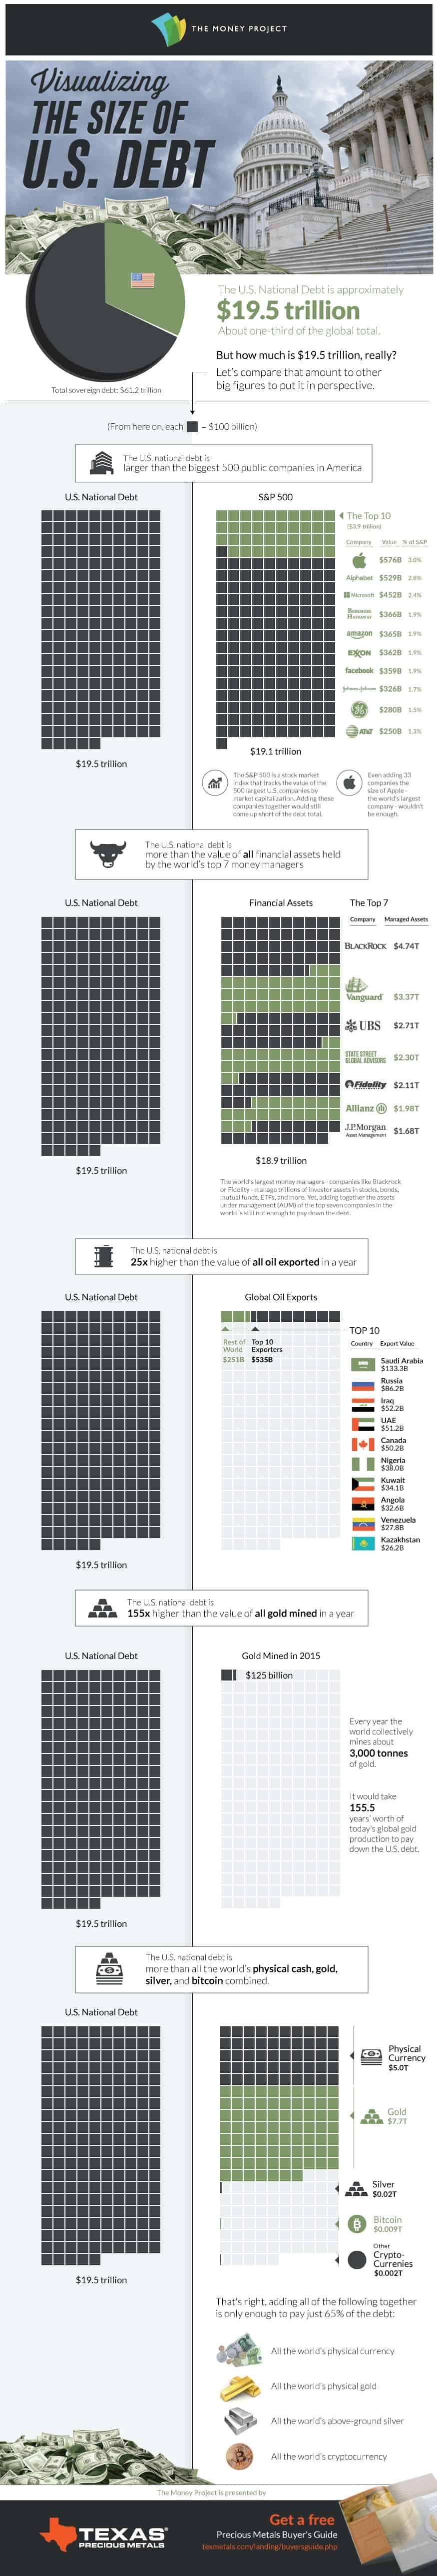 Visualizing The Size Of The U.S. National Debt | Daily ...